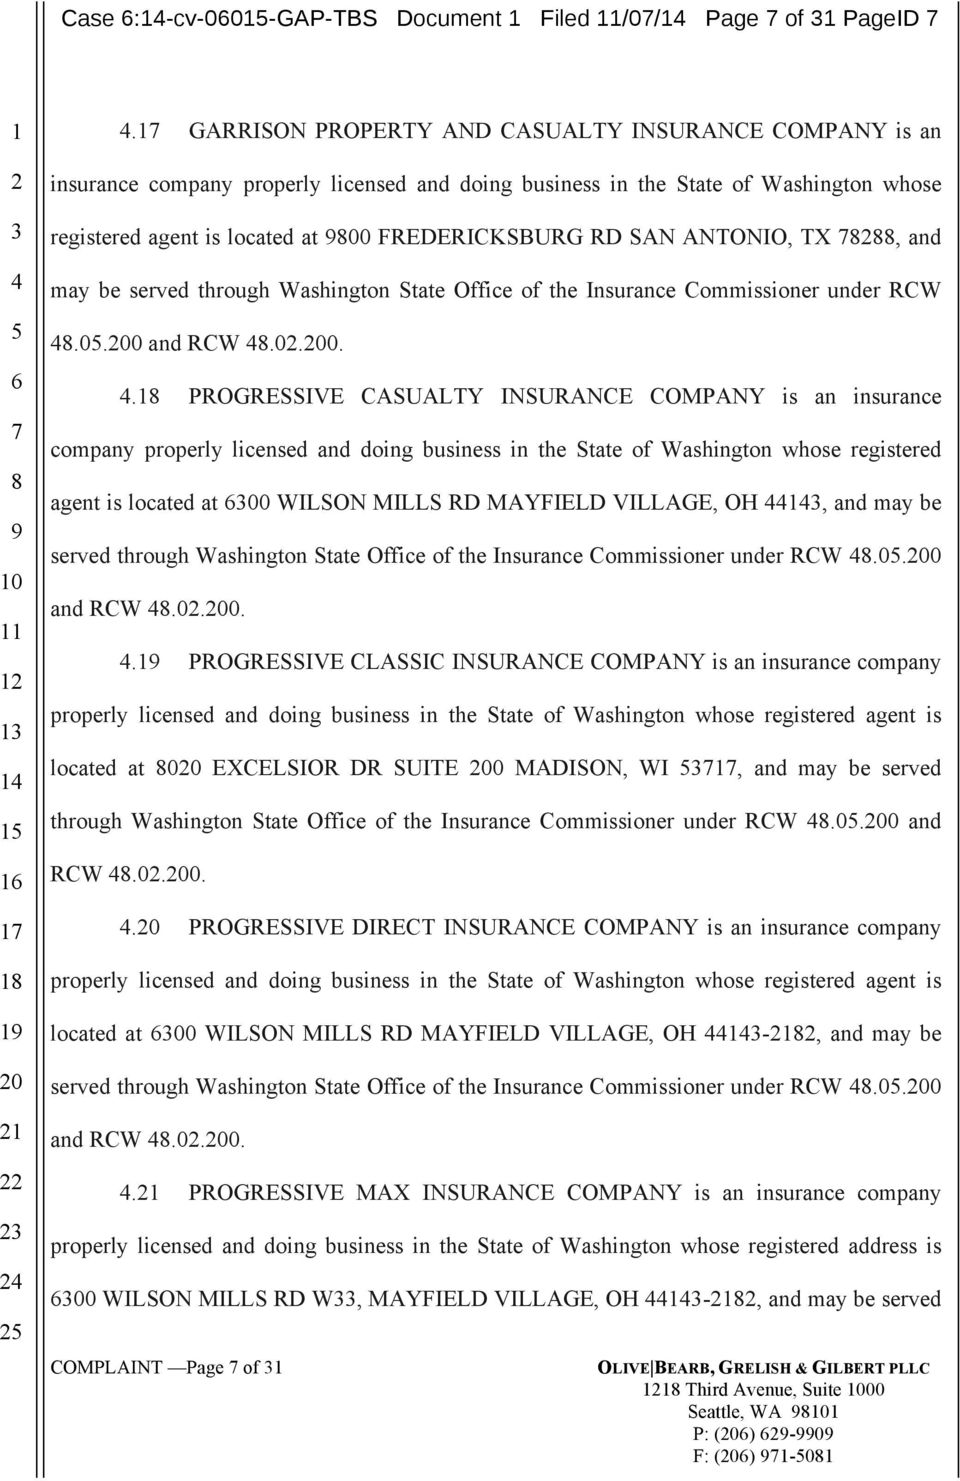 ANTONIO, TX, and may be served through Washington State Office of the Insurance Commissioner under RCW.0.